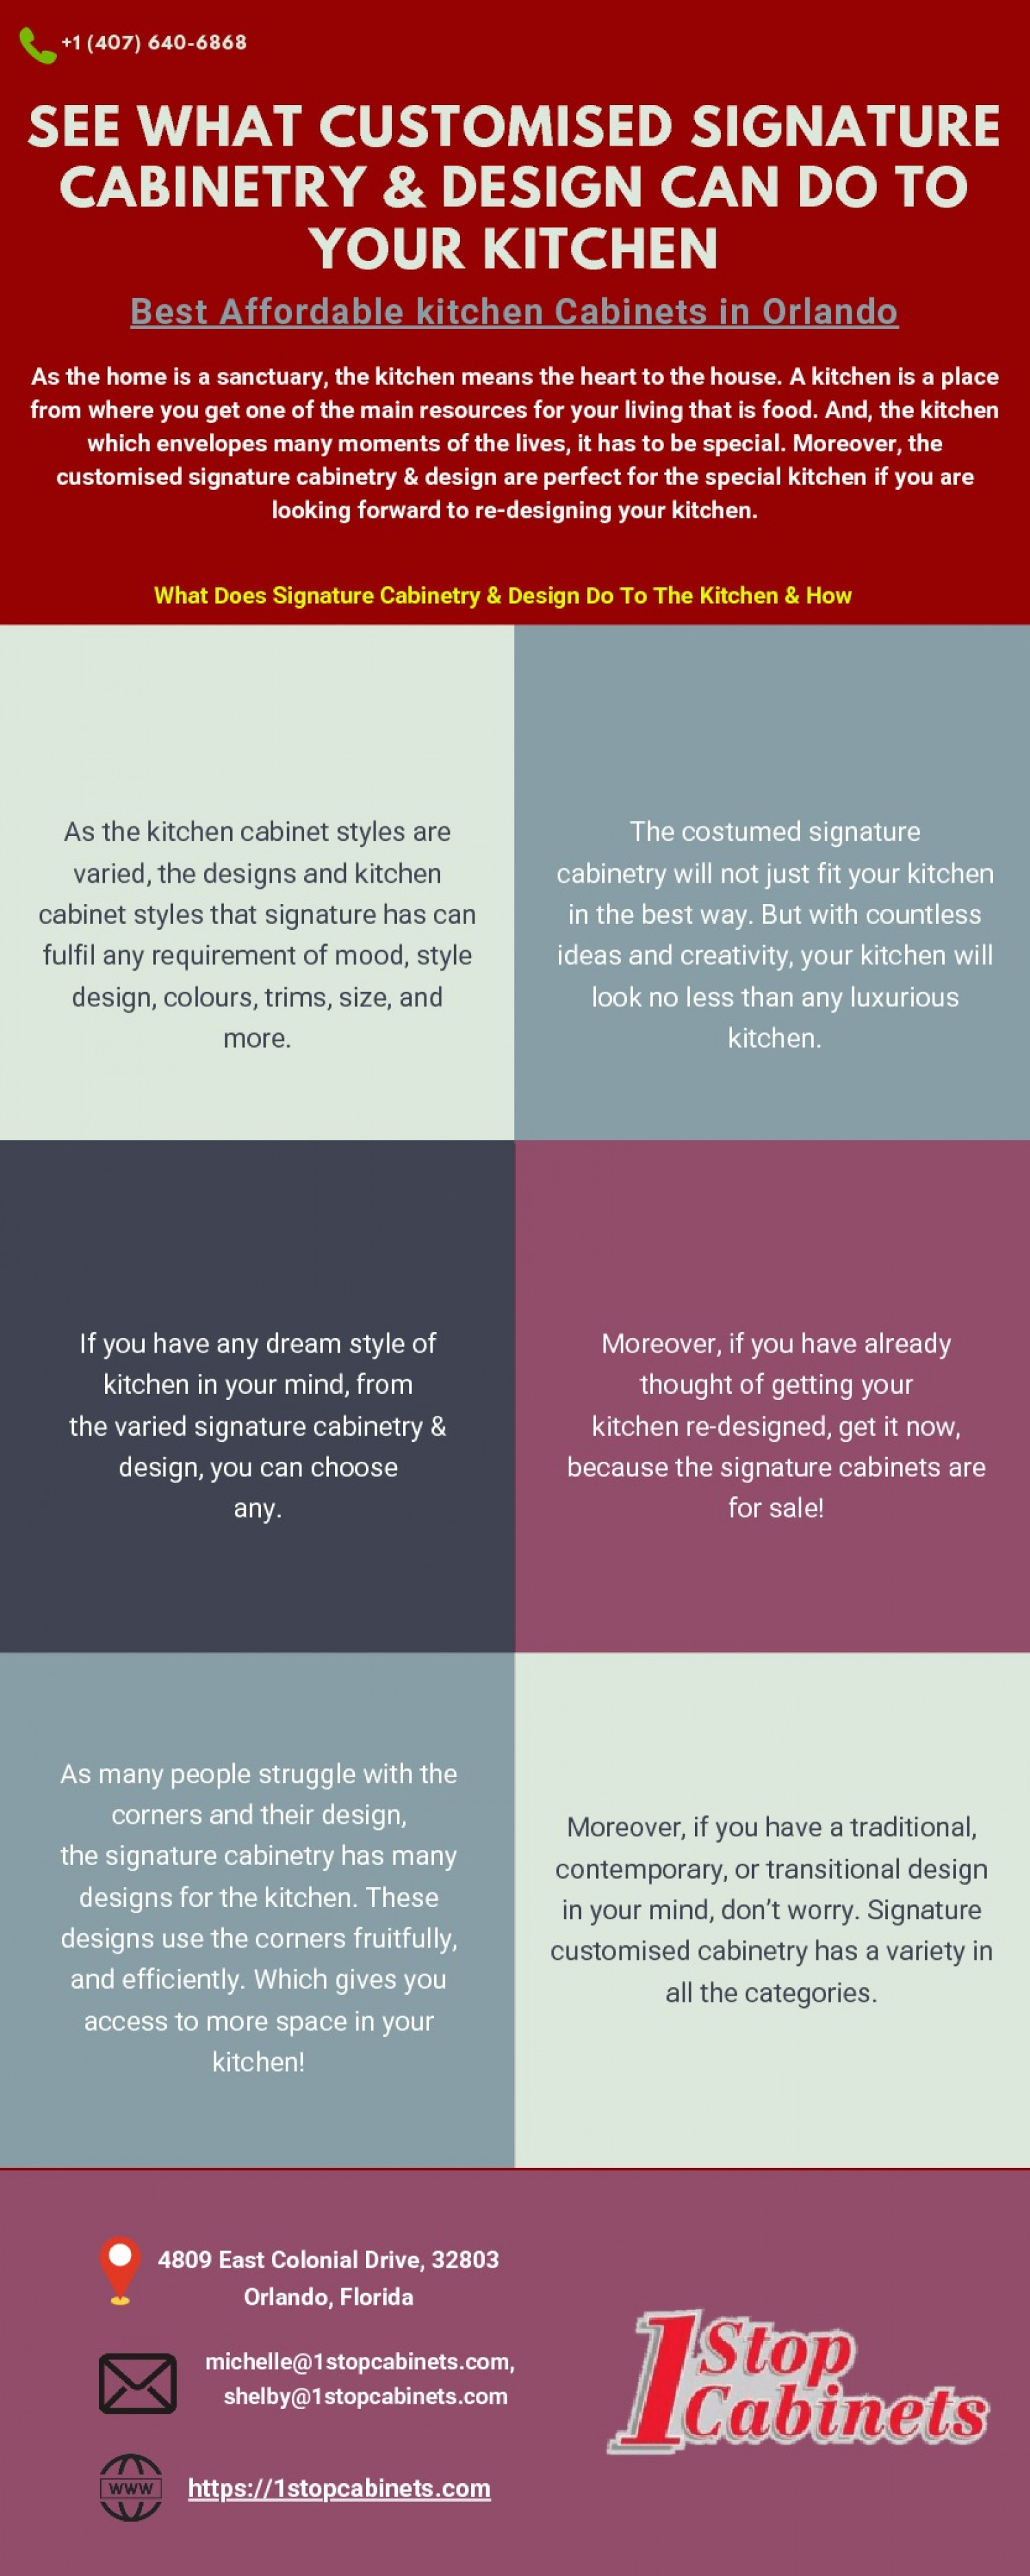 See What Customised Signature Cabinetry & Design Can Do To Your Kitchen Infographic